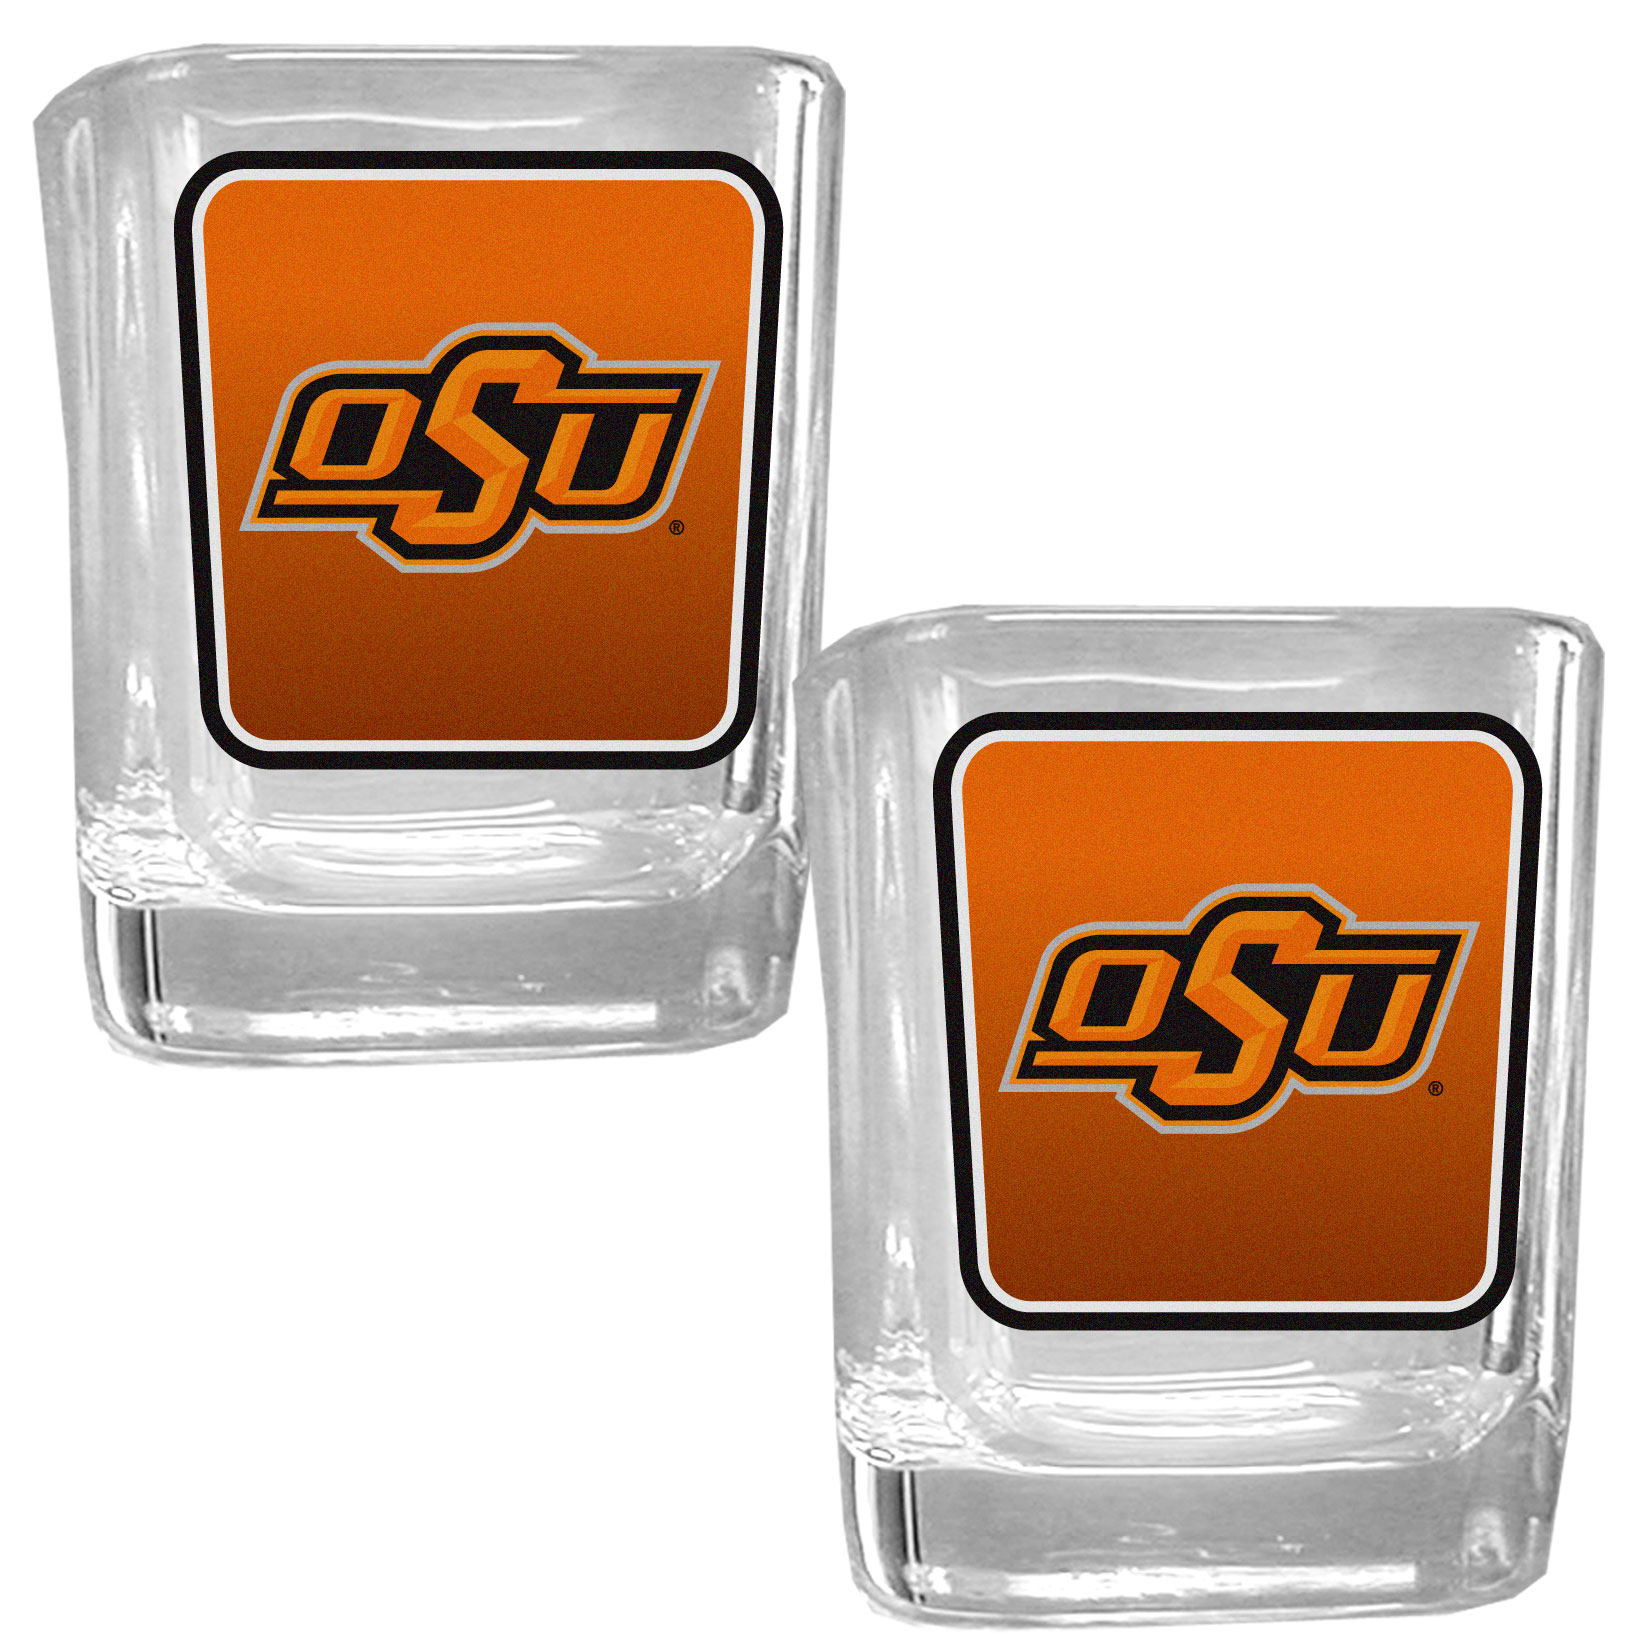 Oklahoma St. Cowboys Square Glass Shot Glass Set - Our glass shot glasses are perfect for collectors or any game day event. The 2 ounce glasses feature bright, vidid digital Oklahoma St. Cowboys graphics. Comes in a set of 2.